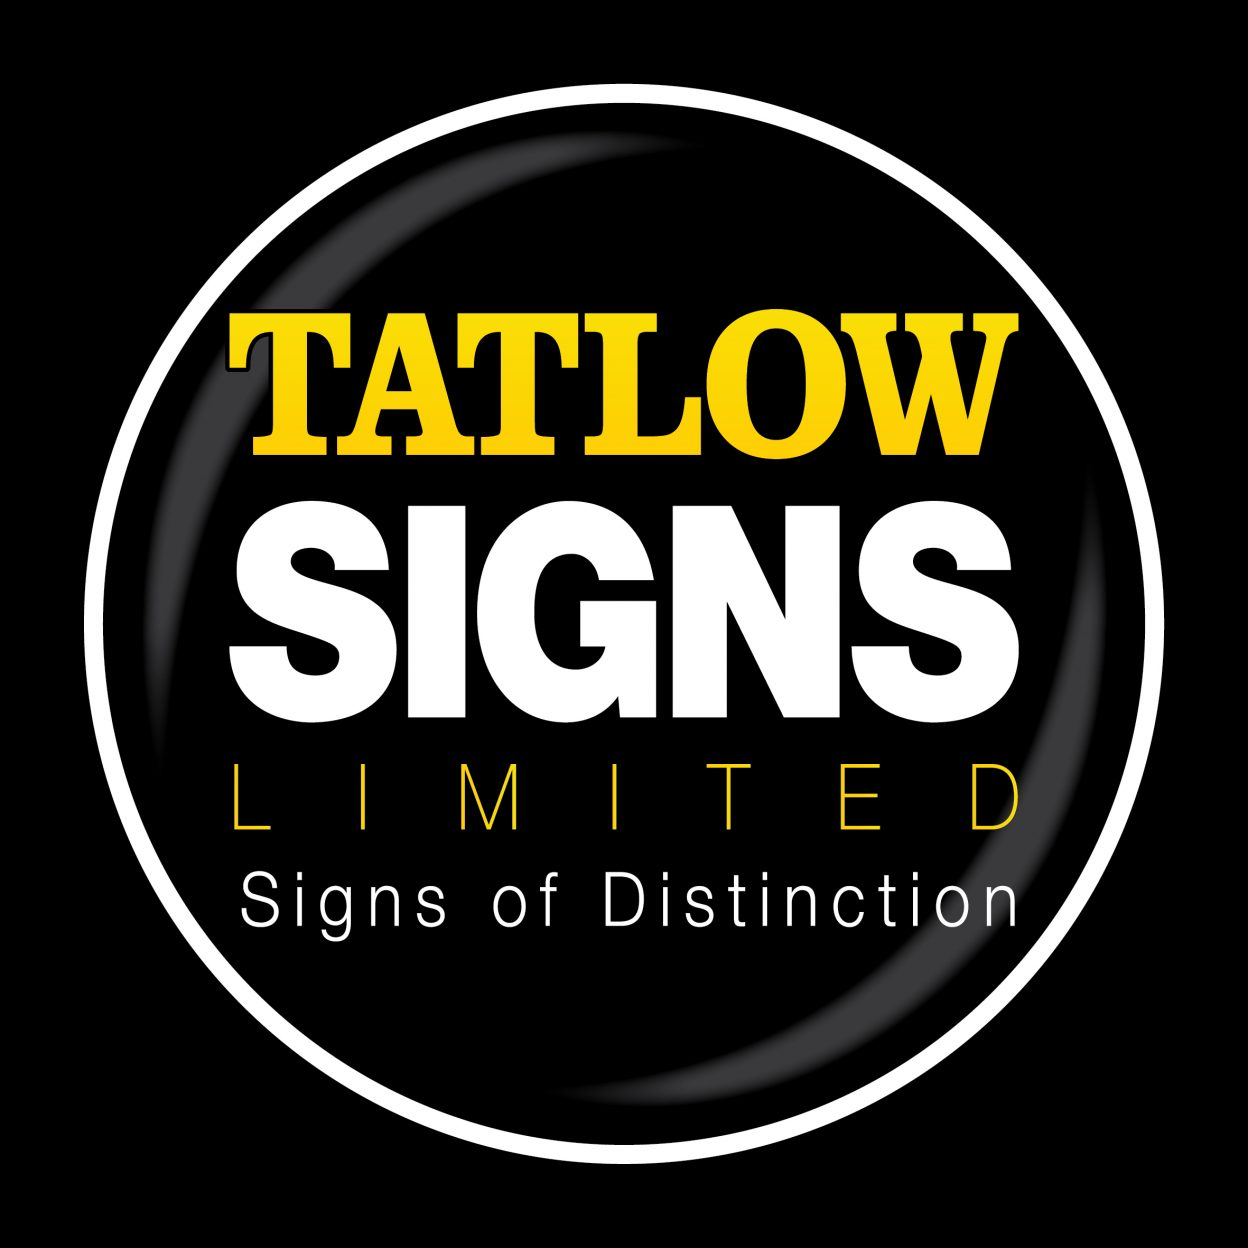 Tatlow Signs Limited